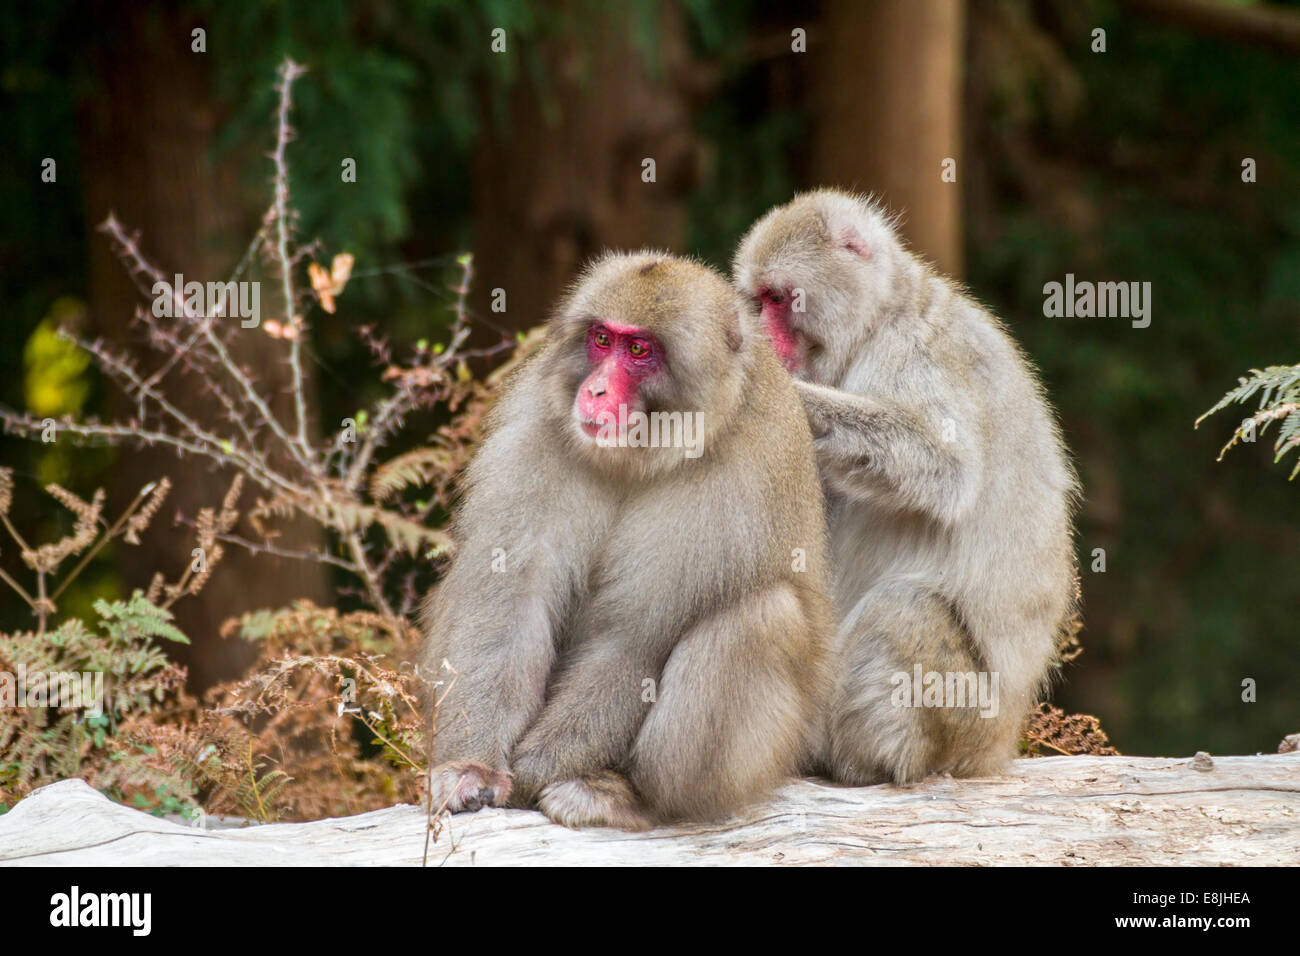 Japanese macaque (Macaca fuscata), or snow monkey. This primate has the northernmost range of any monkey, inhabiting Stock Photo